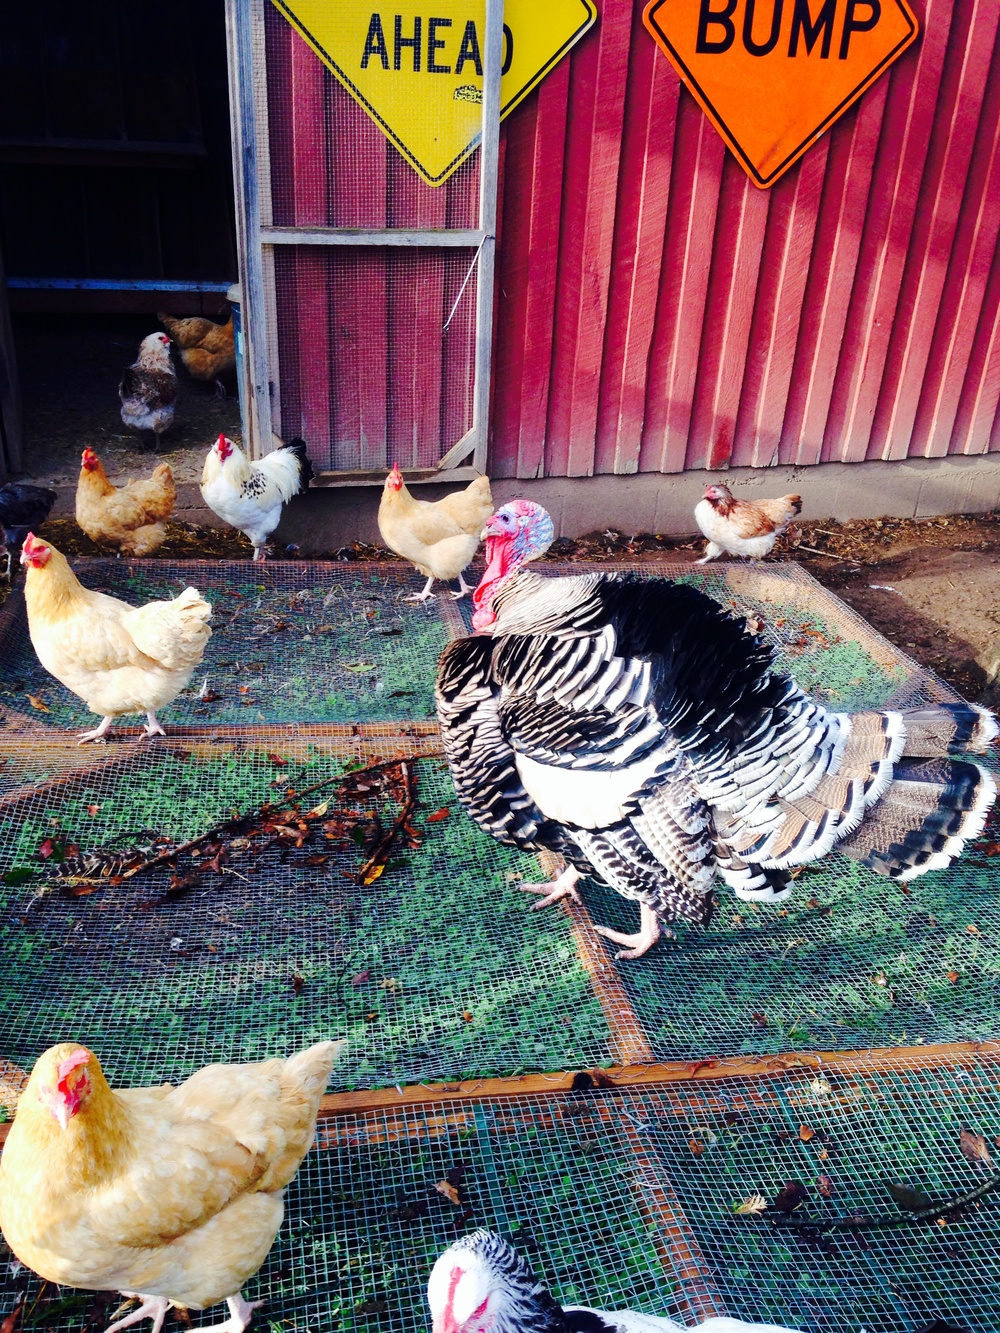 Jive Turkeyand his hens at Such & Such Farm